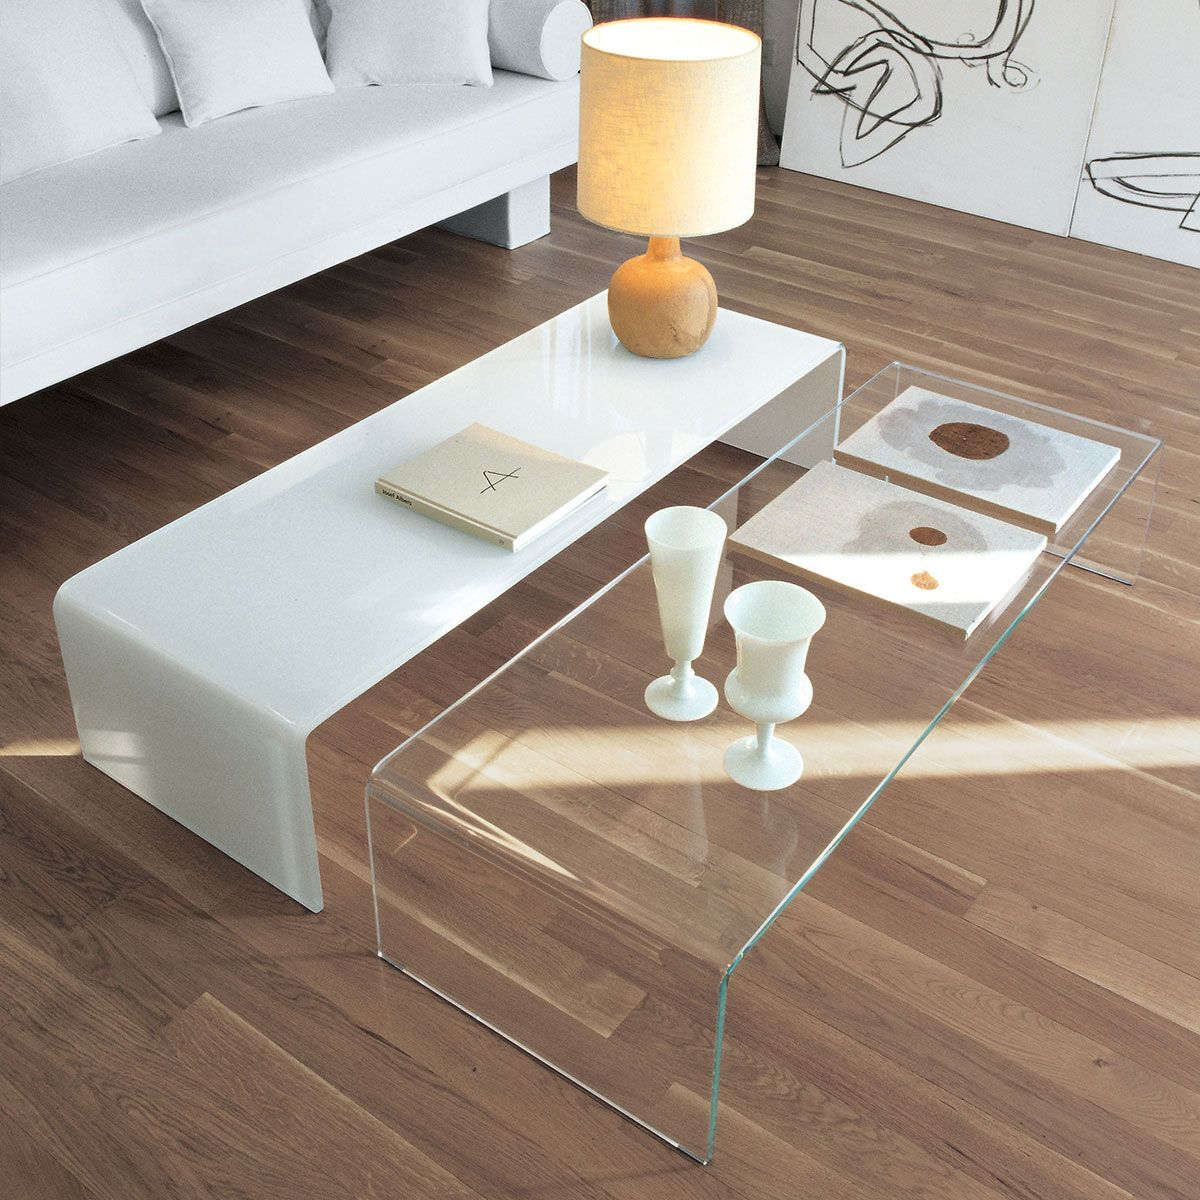 Glass Coffee Tables Furniture Village: Bridge Curved Glass Coffee Table By Sovet Italia